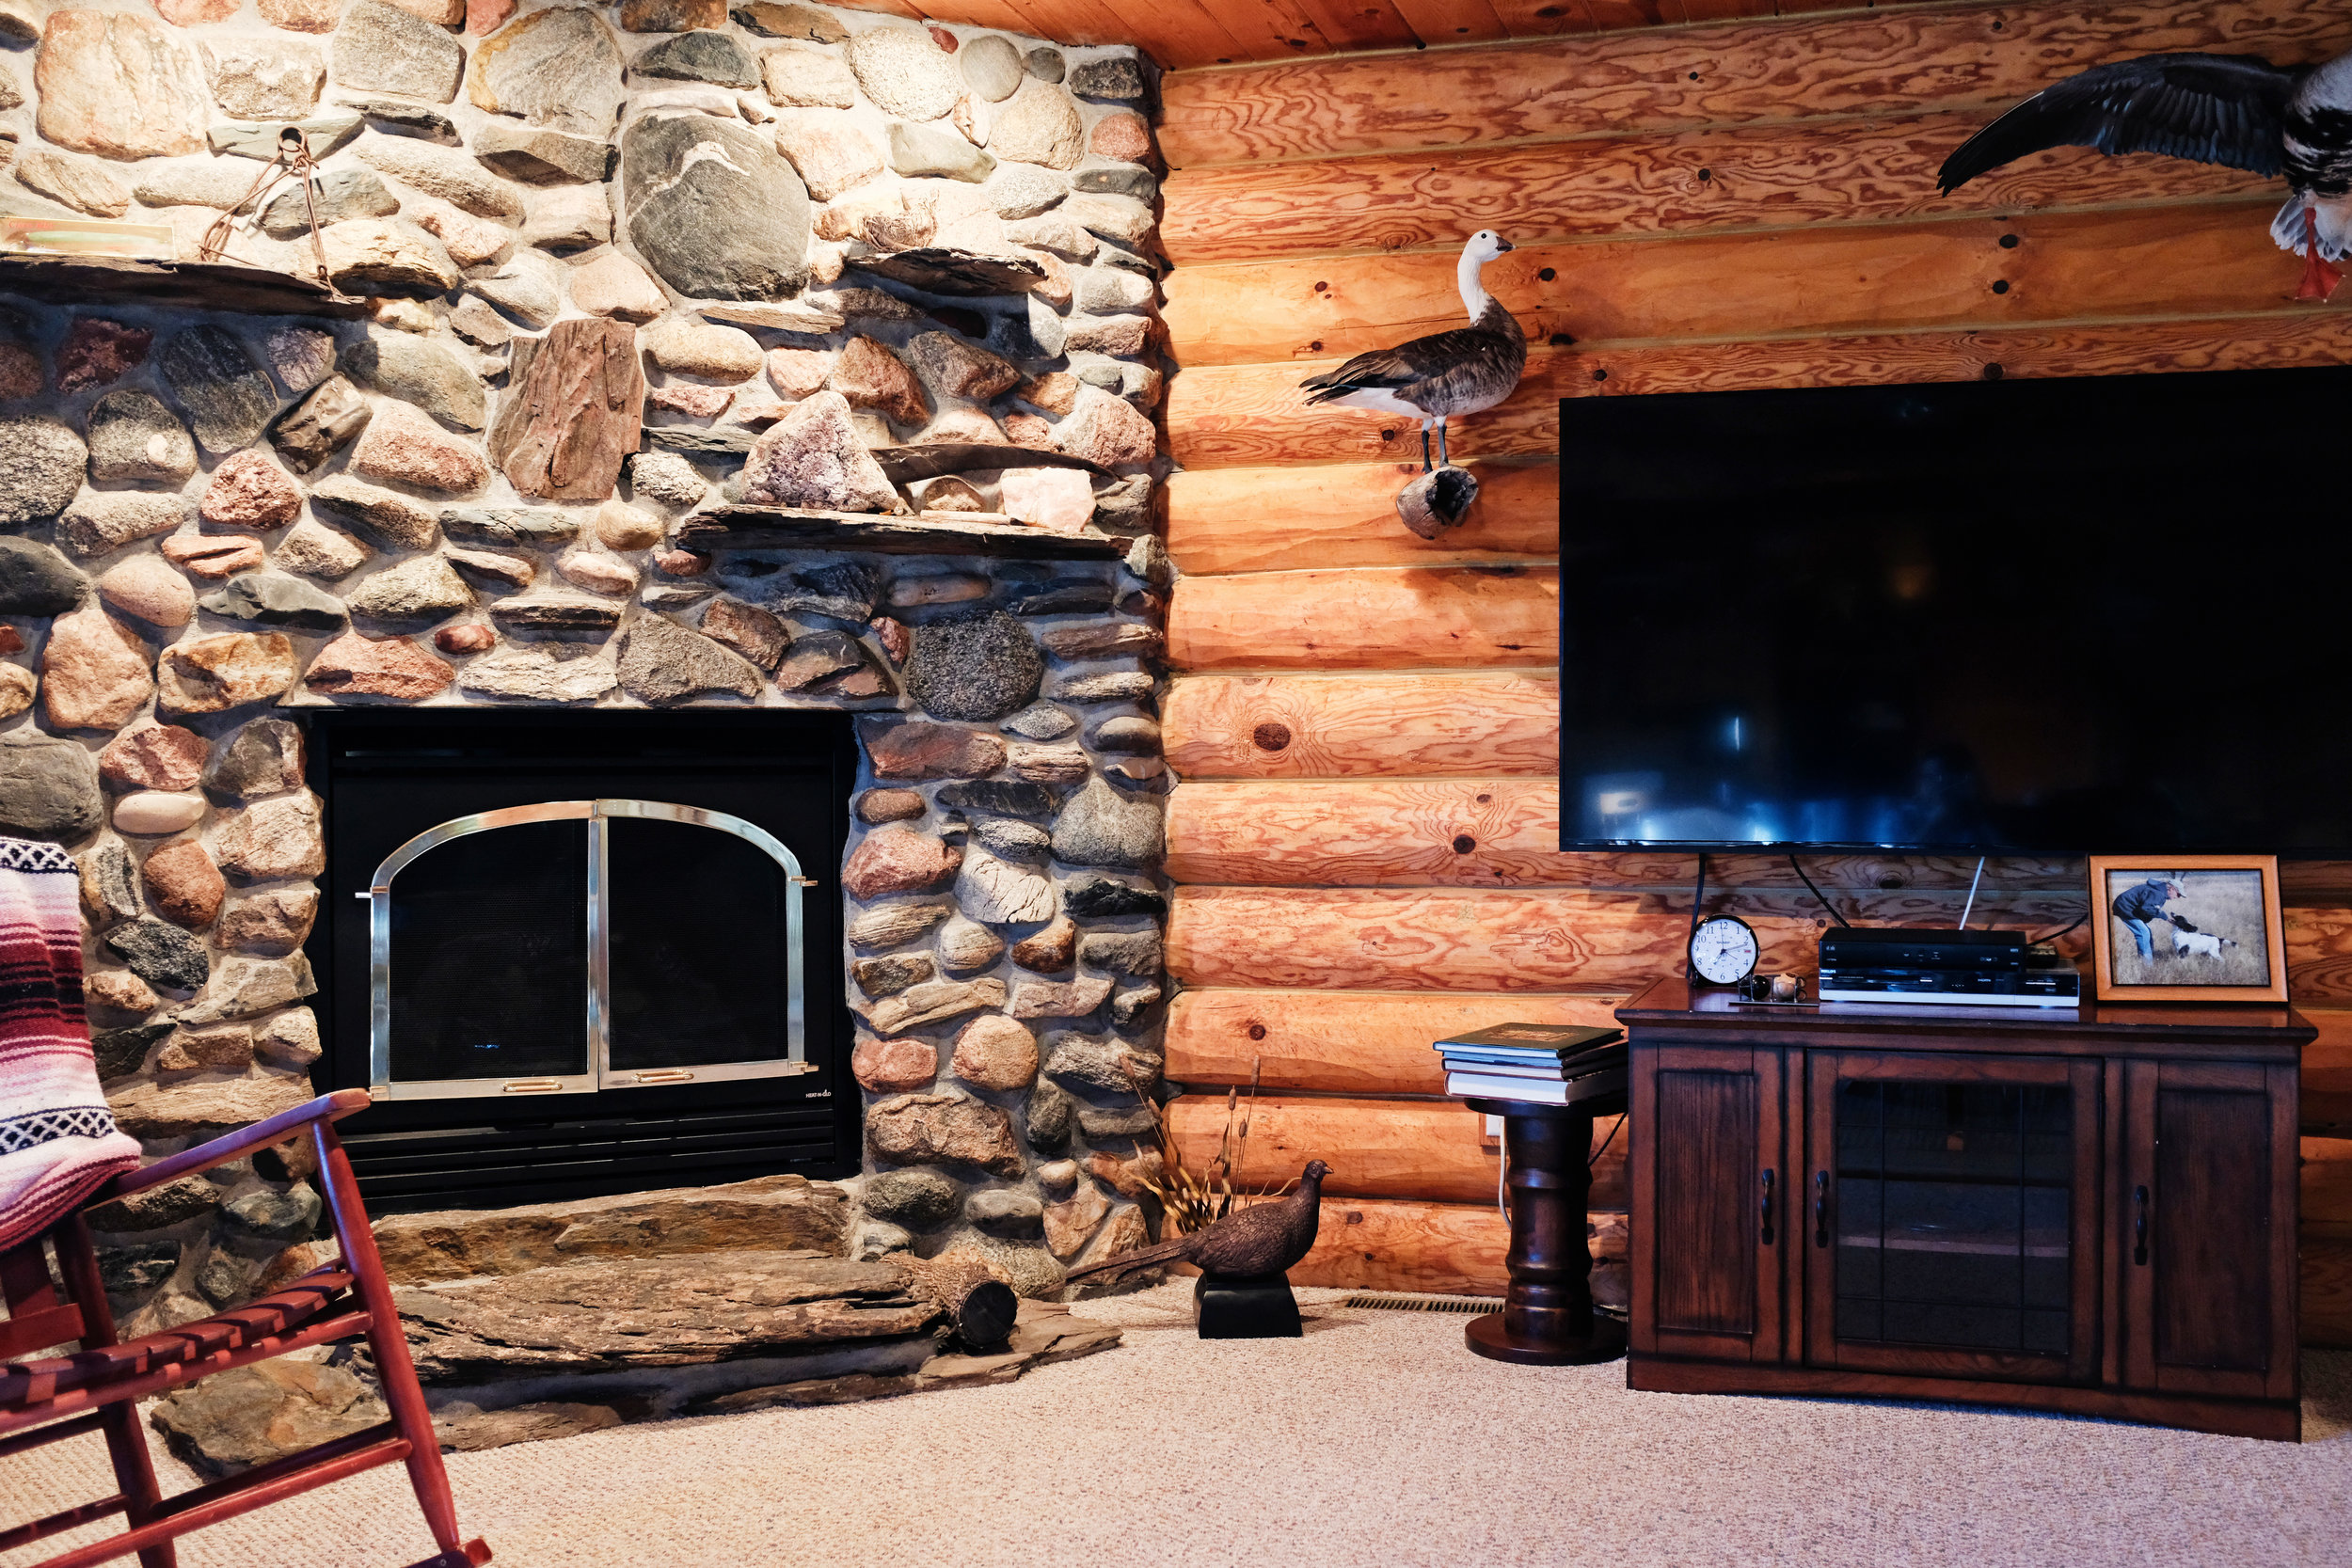 High-speed internet, Satellite TV by Dish Network, and a fireplace makes The Last Resort your home away from home.